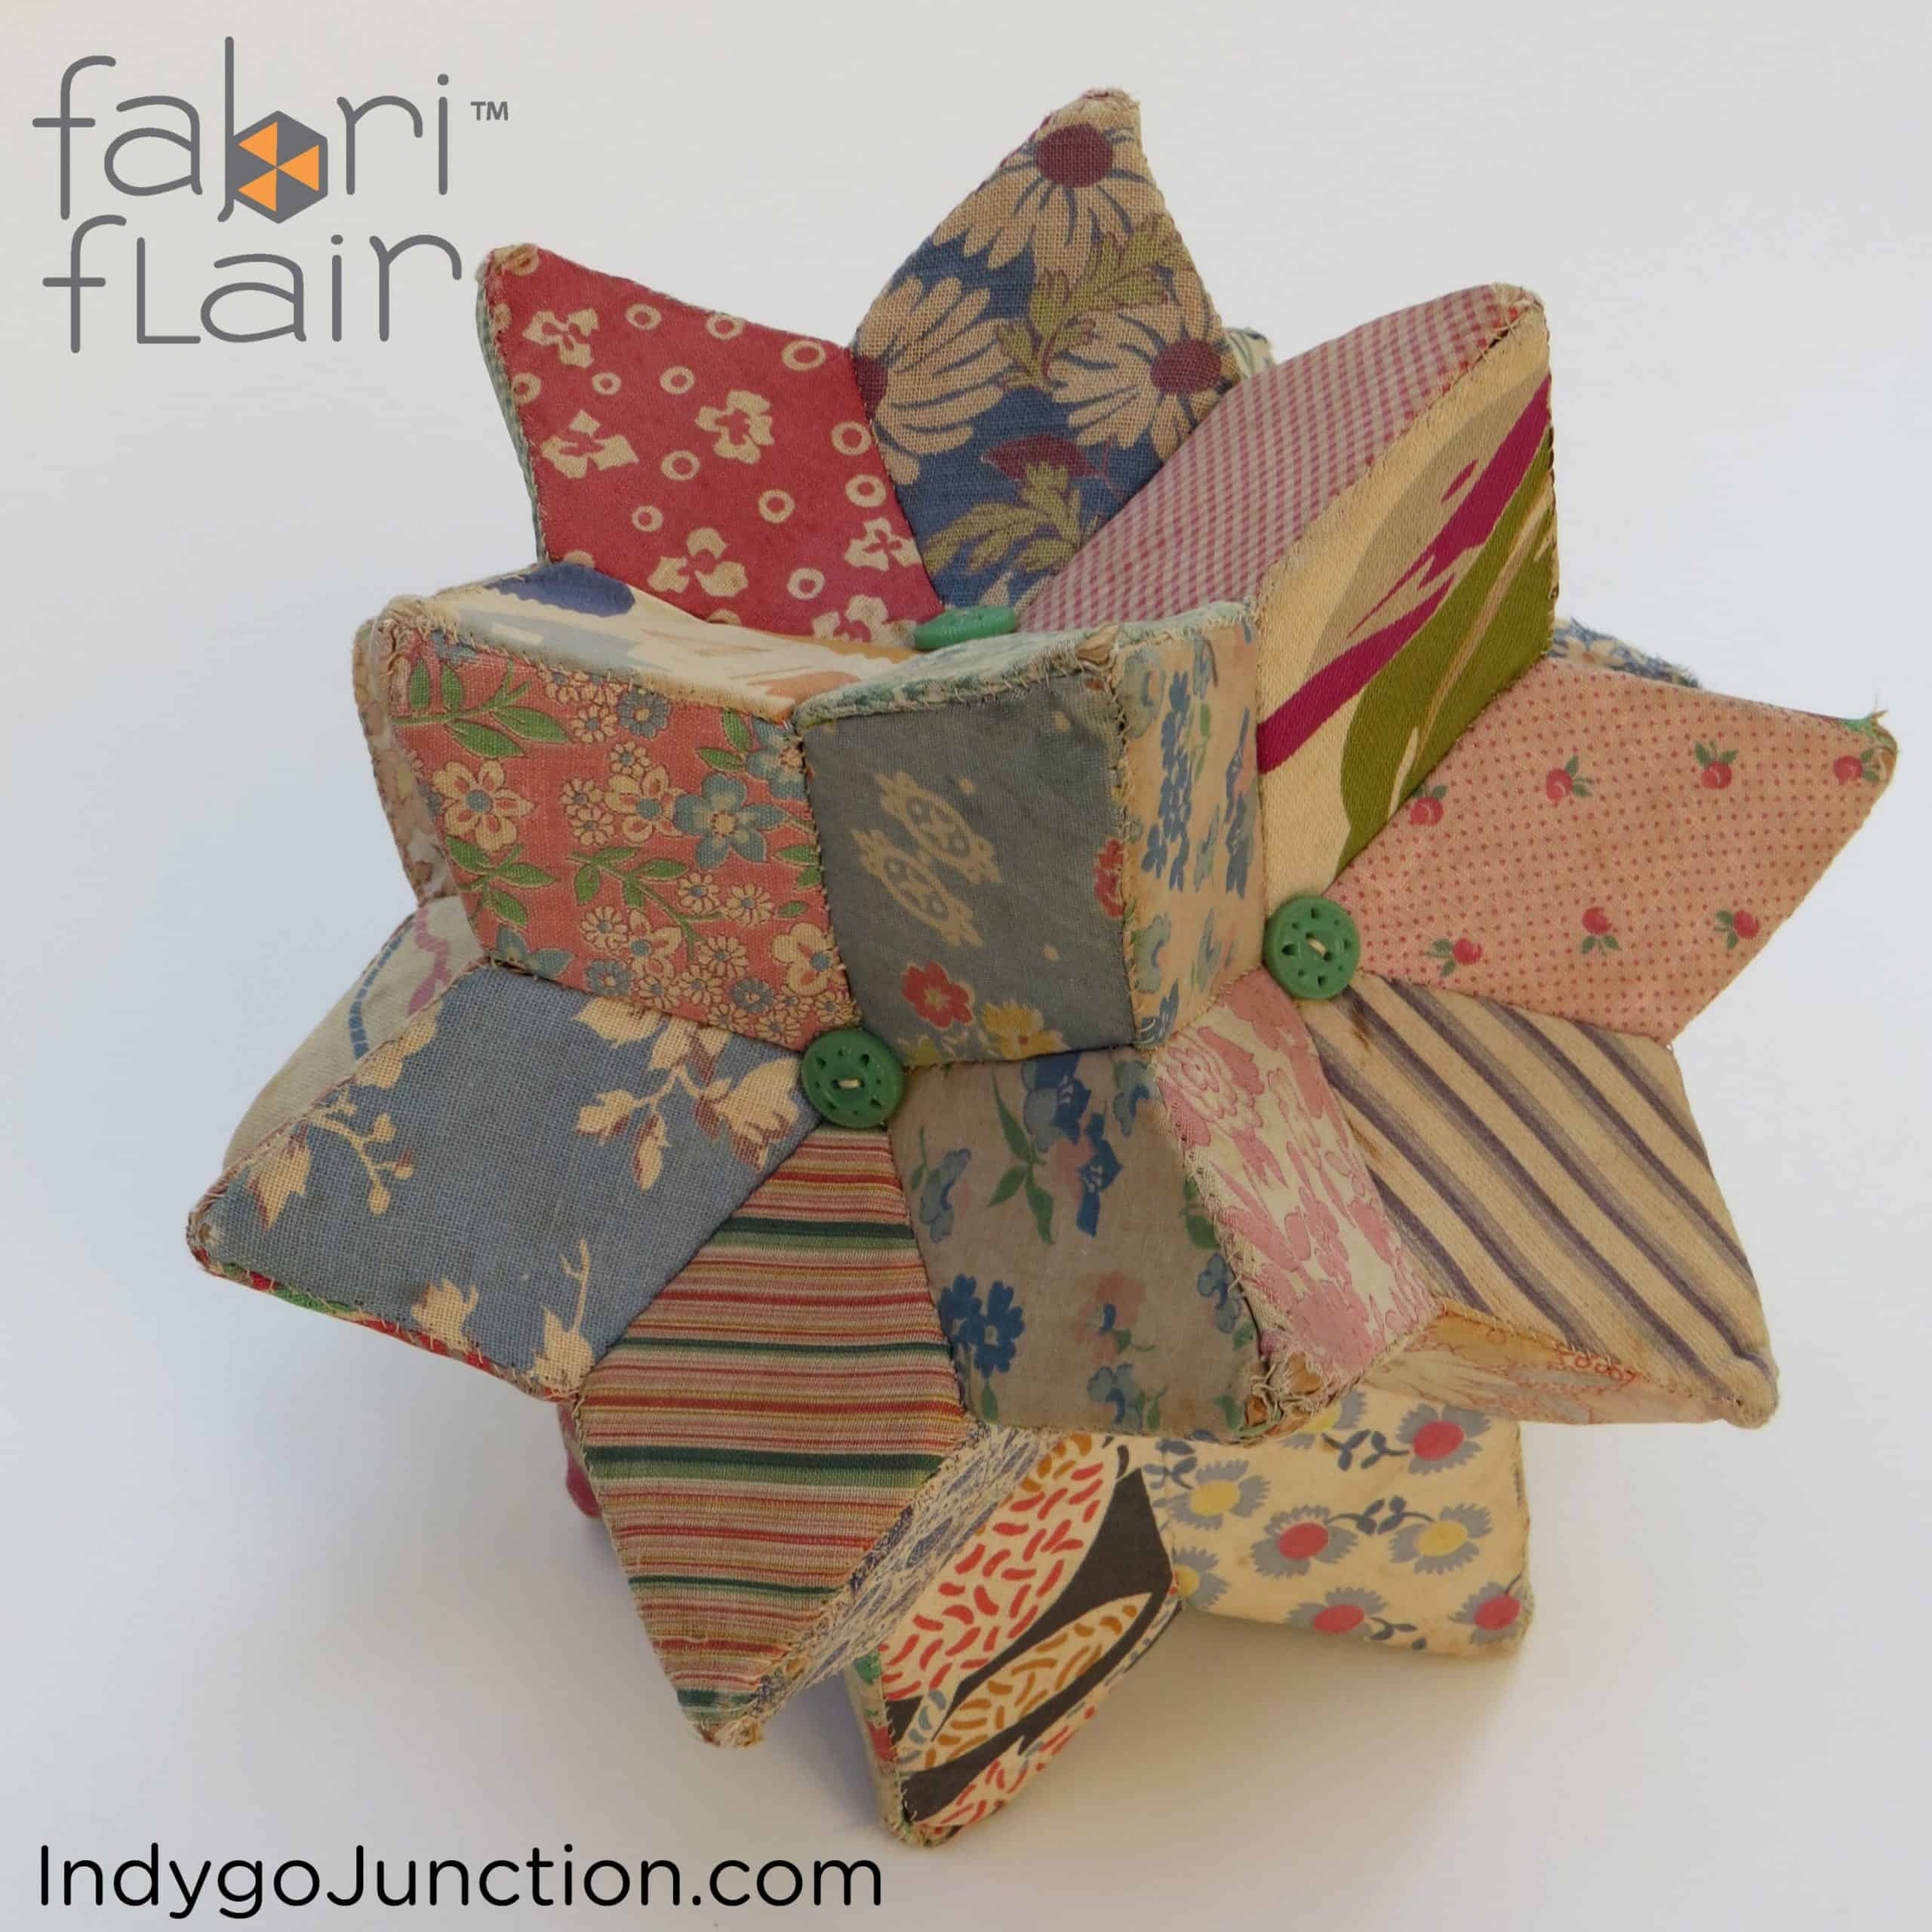 Vintage Made Modern – Fabriflair!